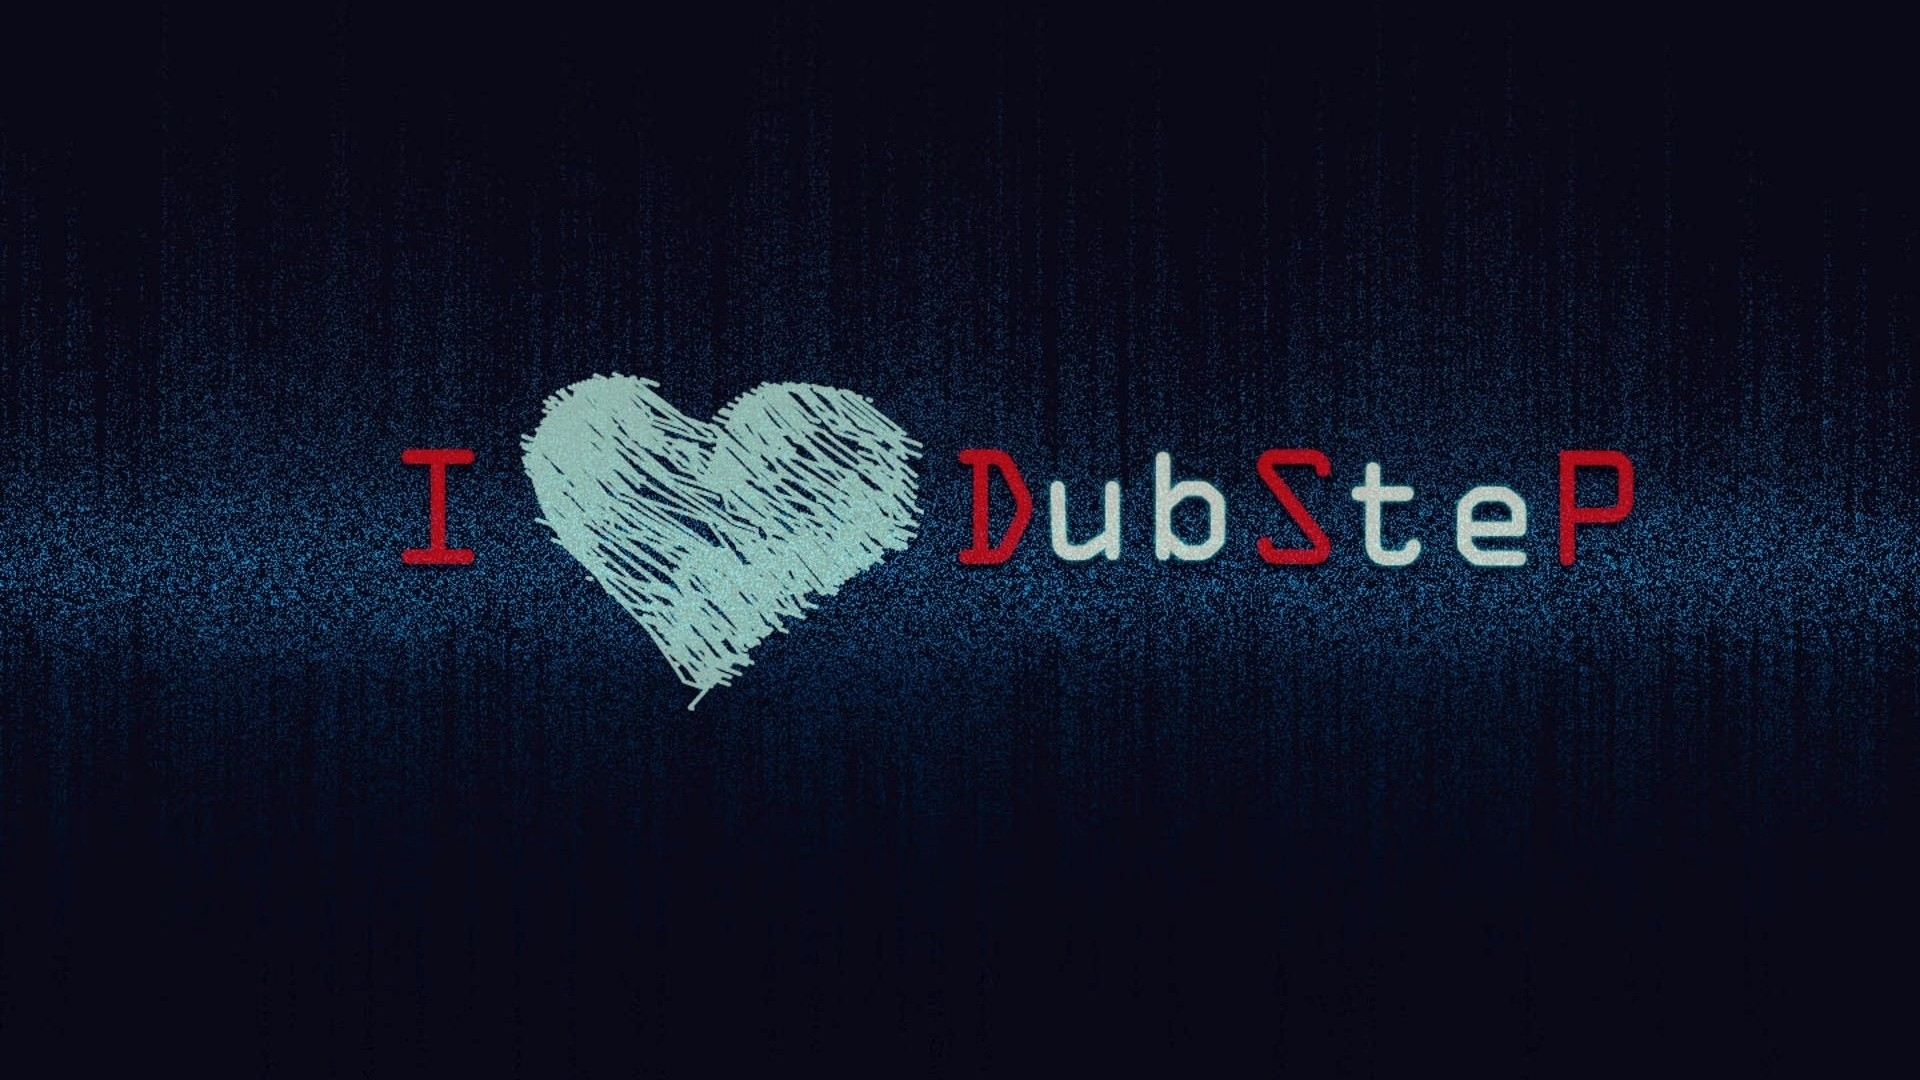 abstract dubstep wallpaper 1080p - photo #42